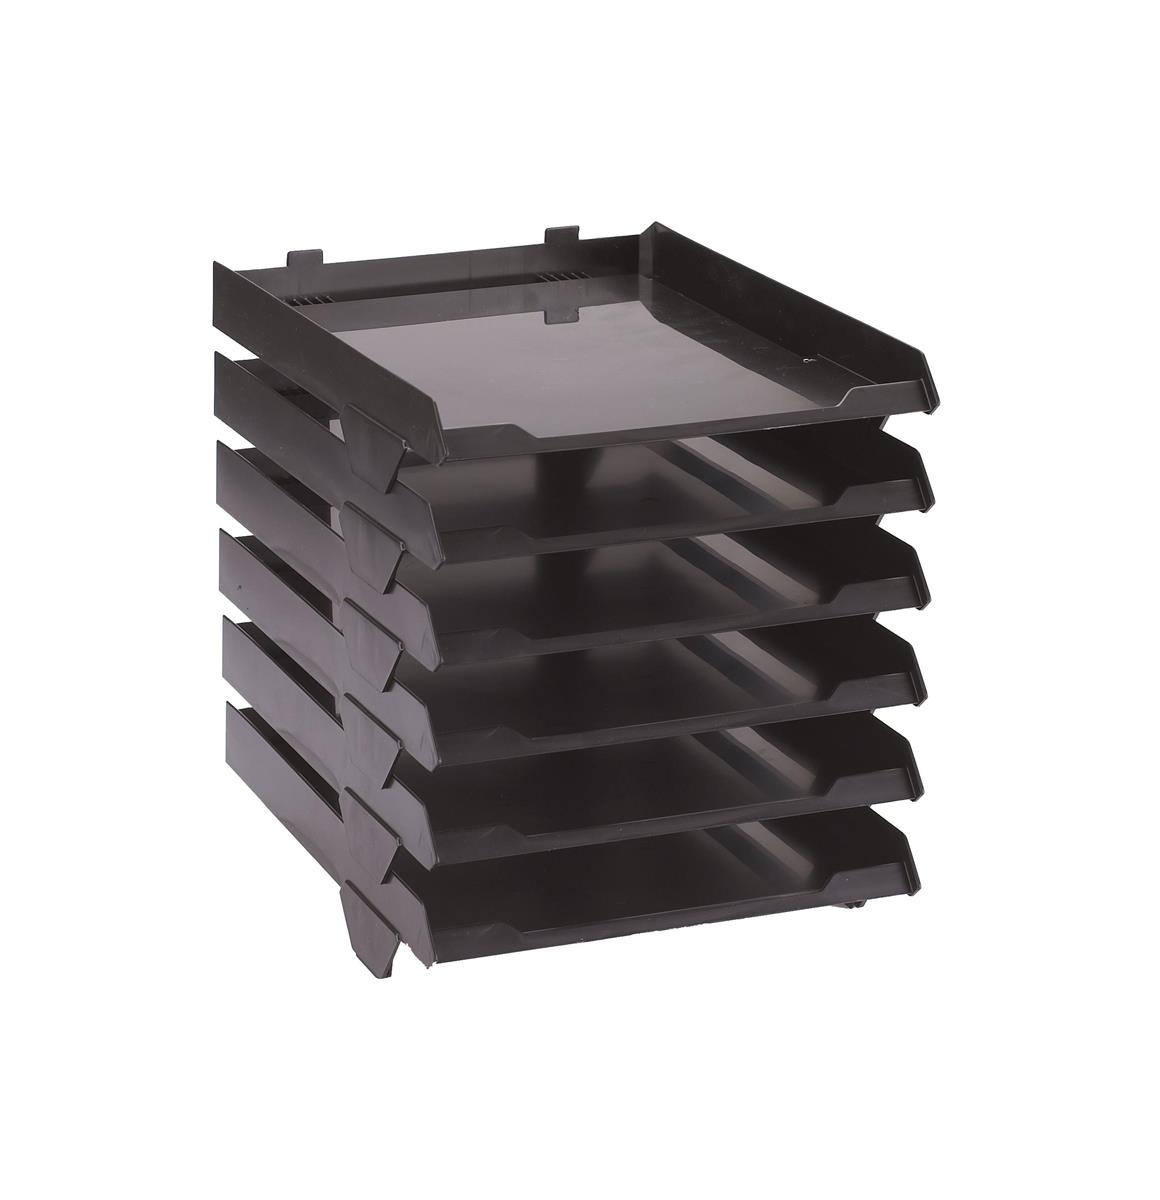 Image for Avery Paperstack Letter Tray Self-stacking A4 W250xD320xH300mm Black Ref 5336BLK [Pack 6]